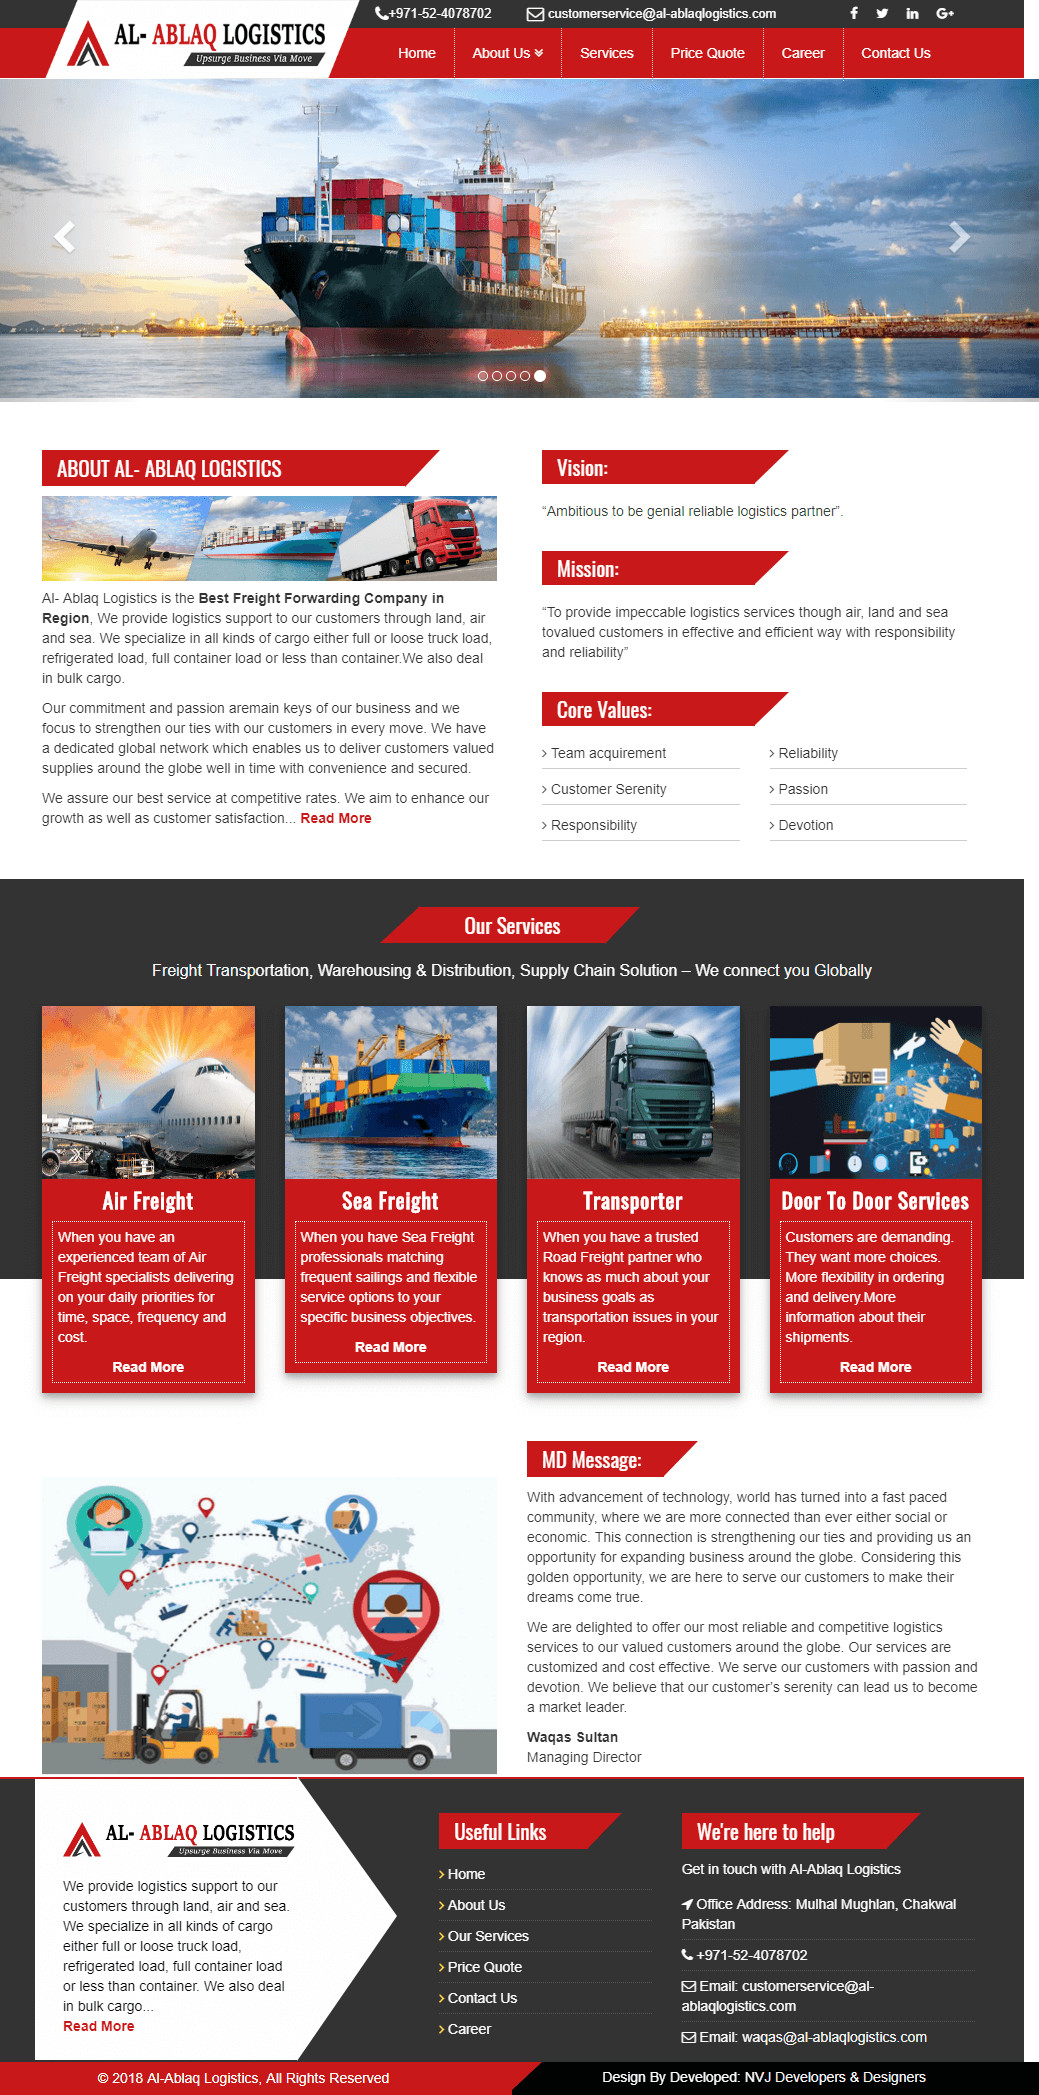 NVJ-Developers-Freight-Forwarder-website-design